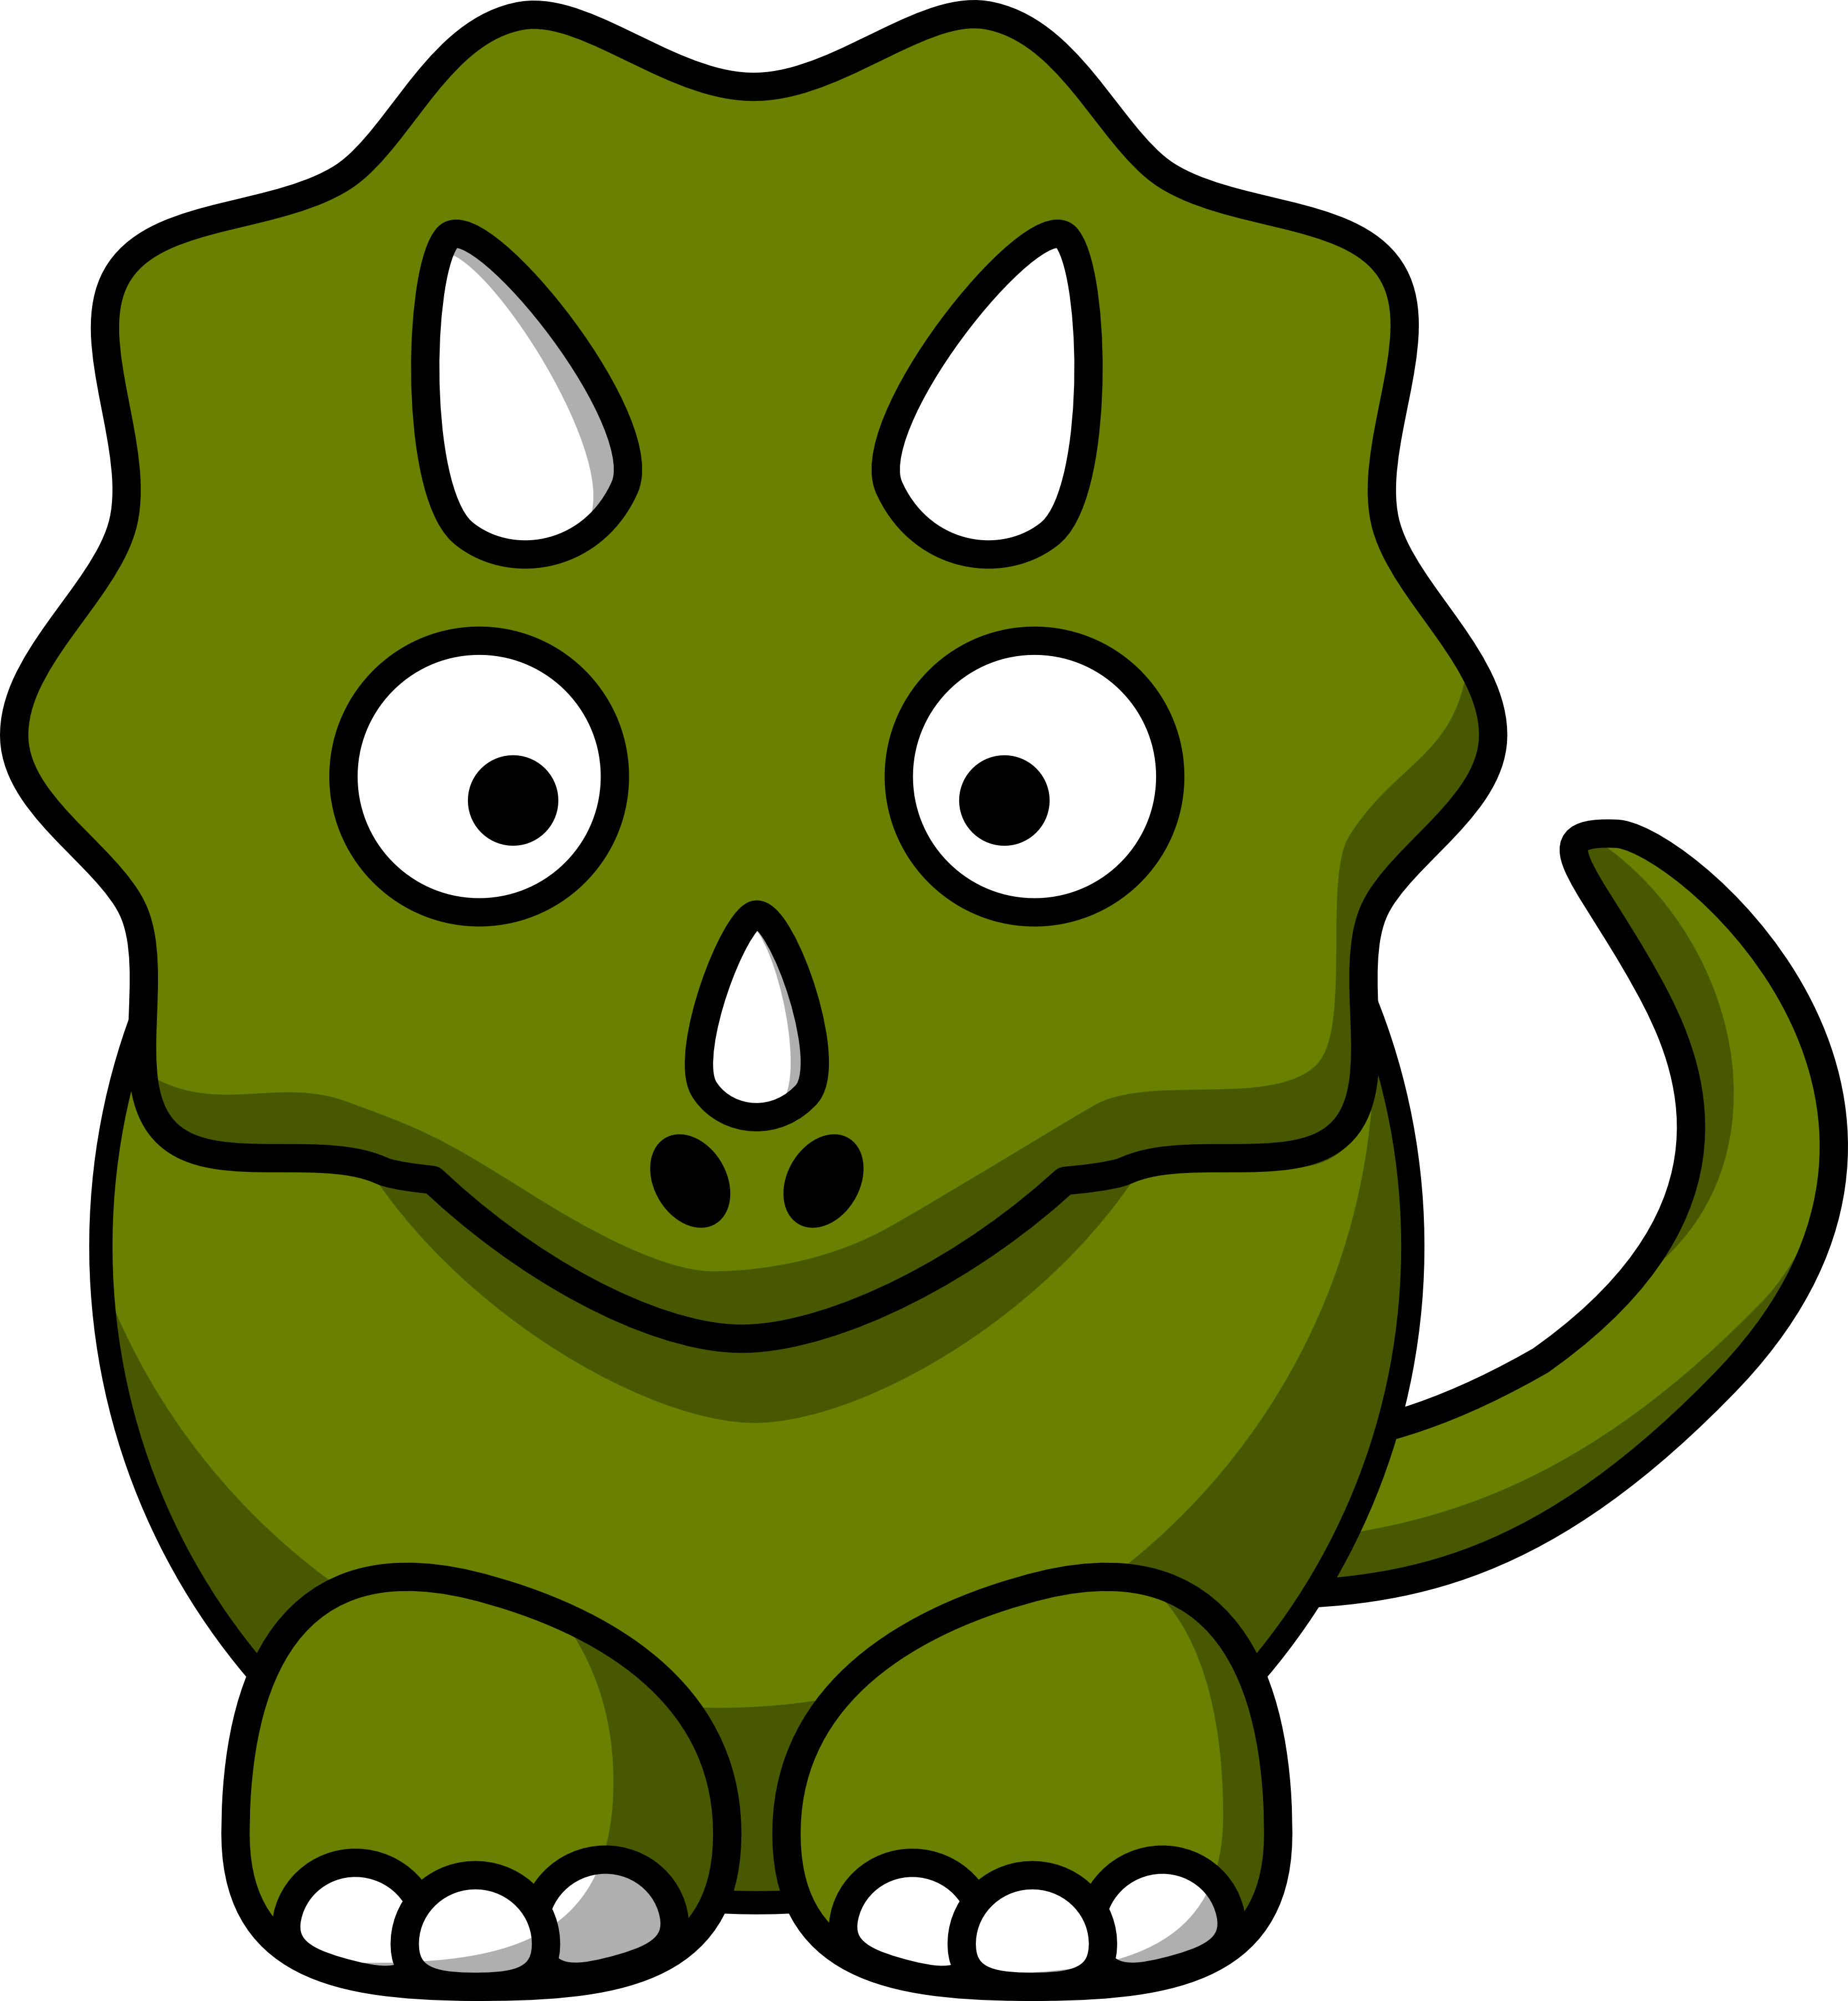 Triceratops black and white. Dinosaur clipart poop